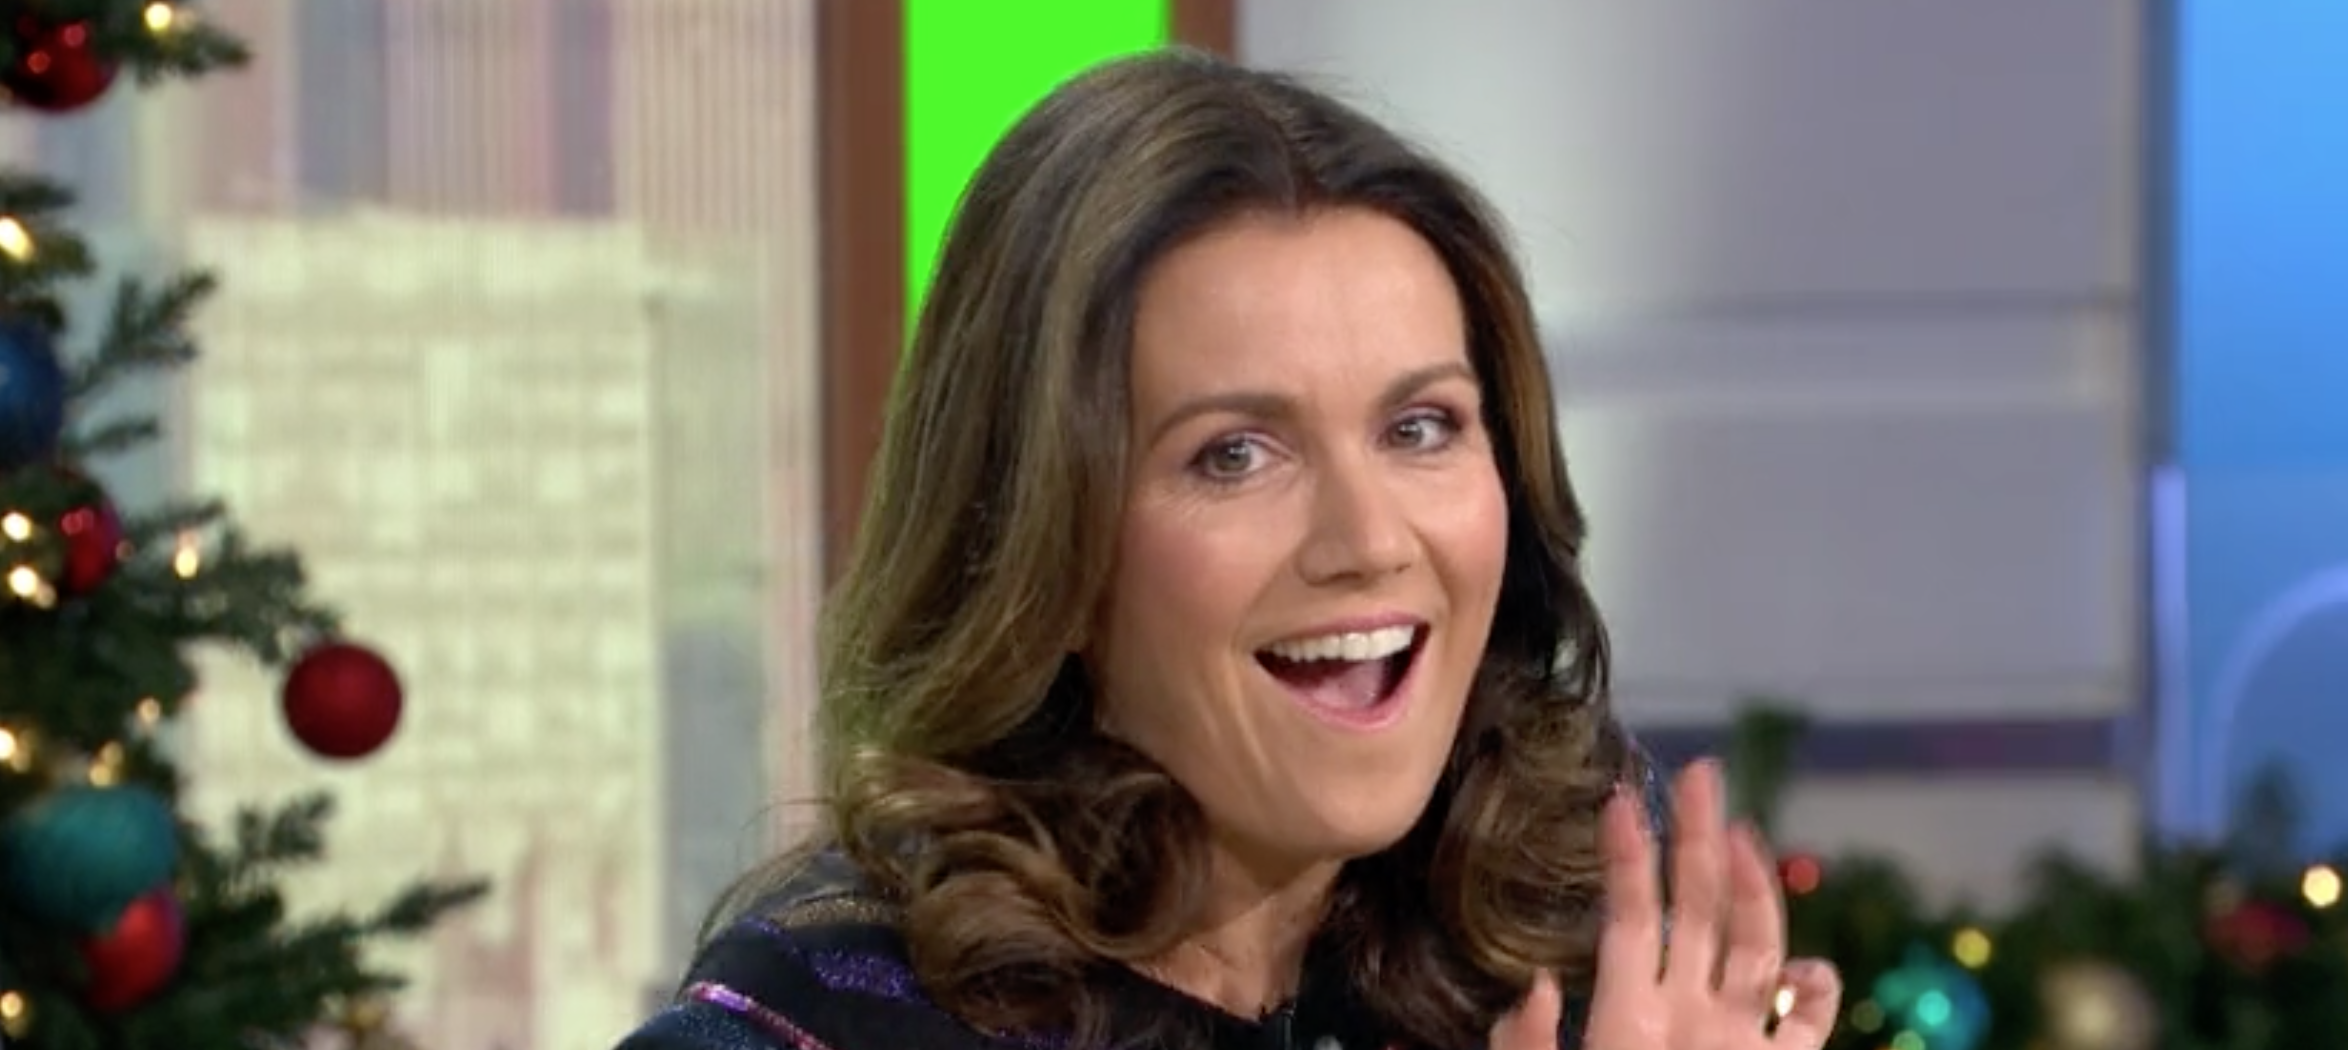 Susanna Reid is given a button to 'mute' Piers Morgan for her birthday